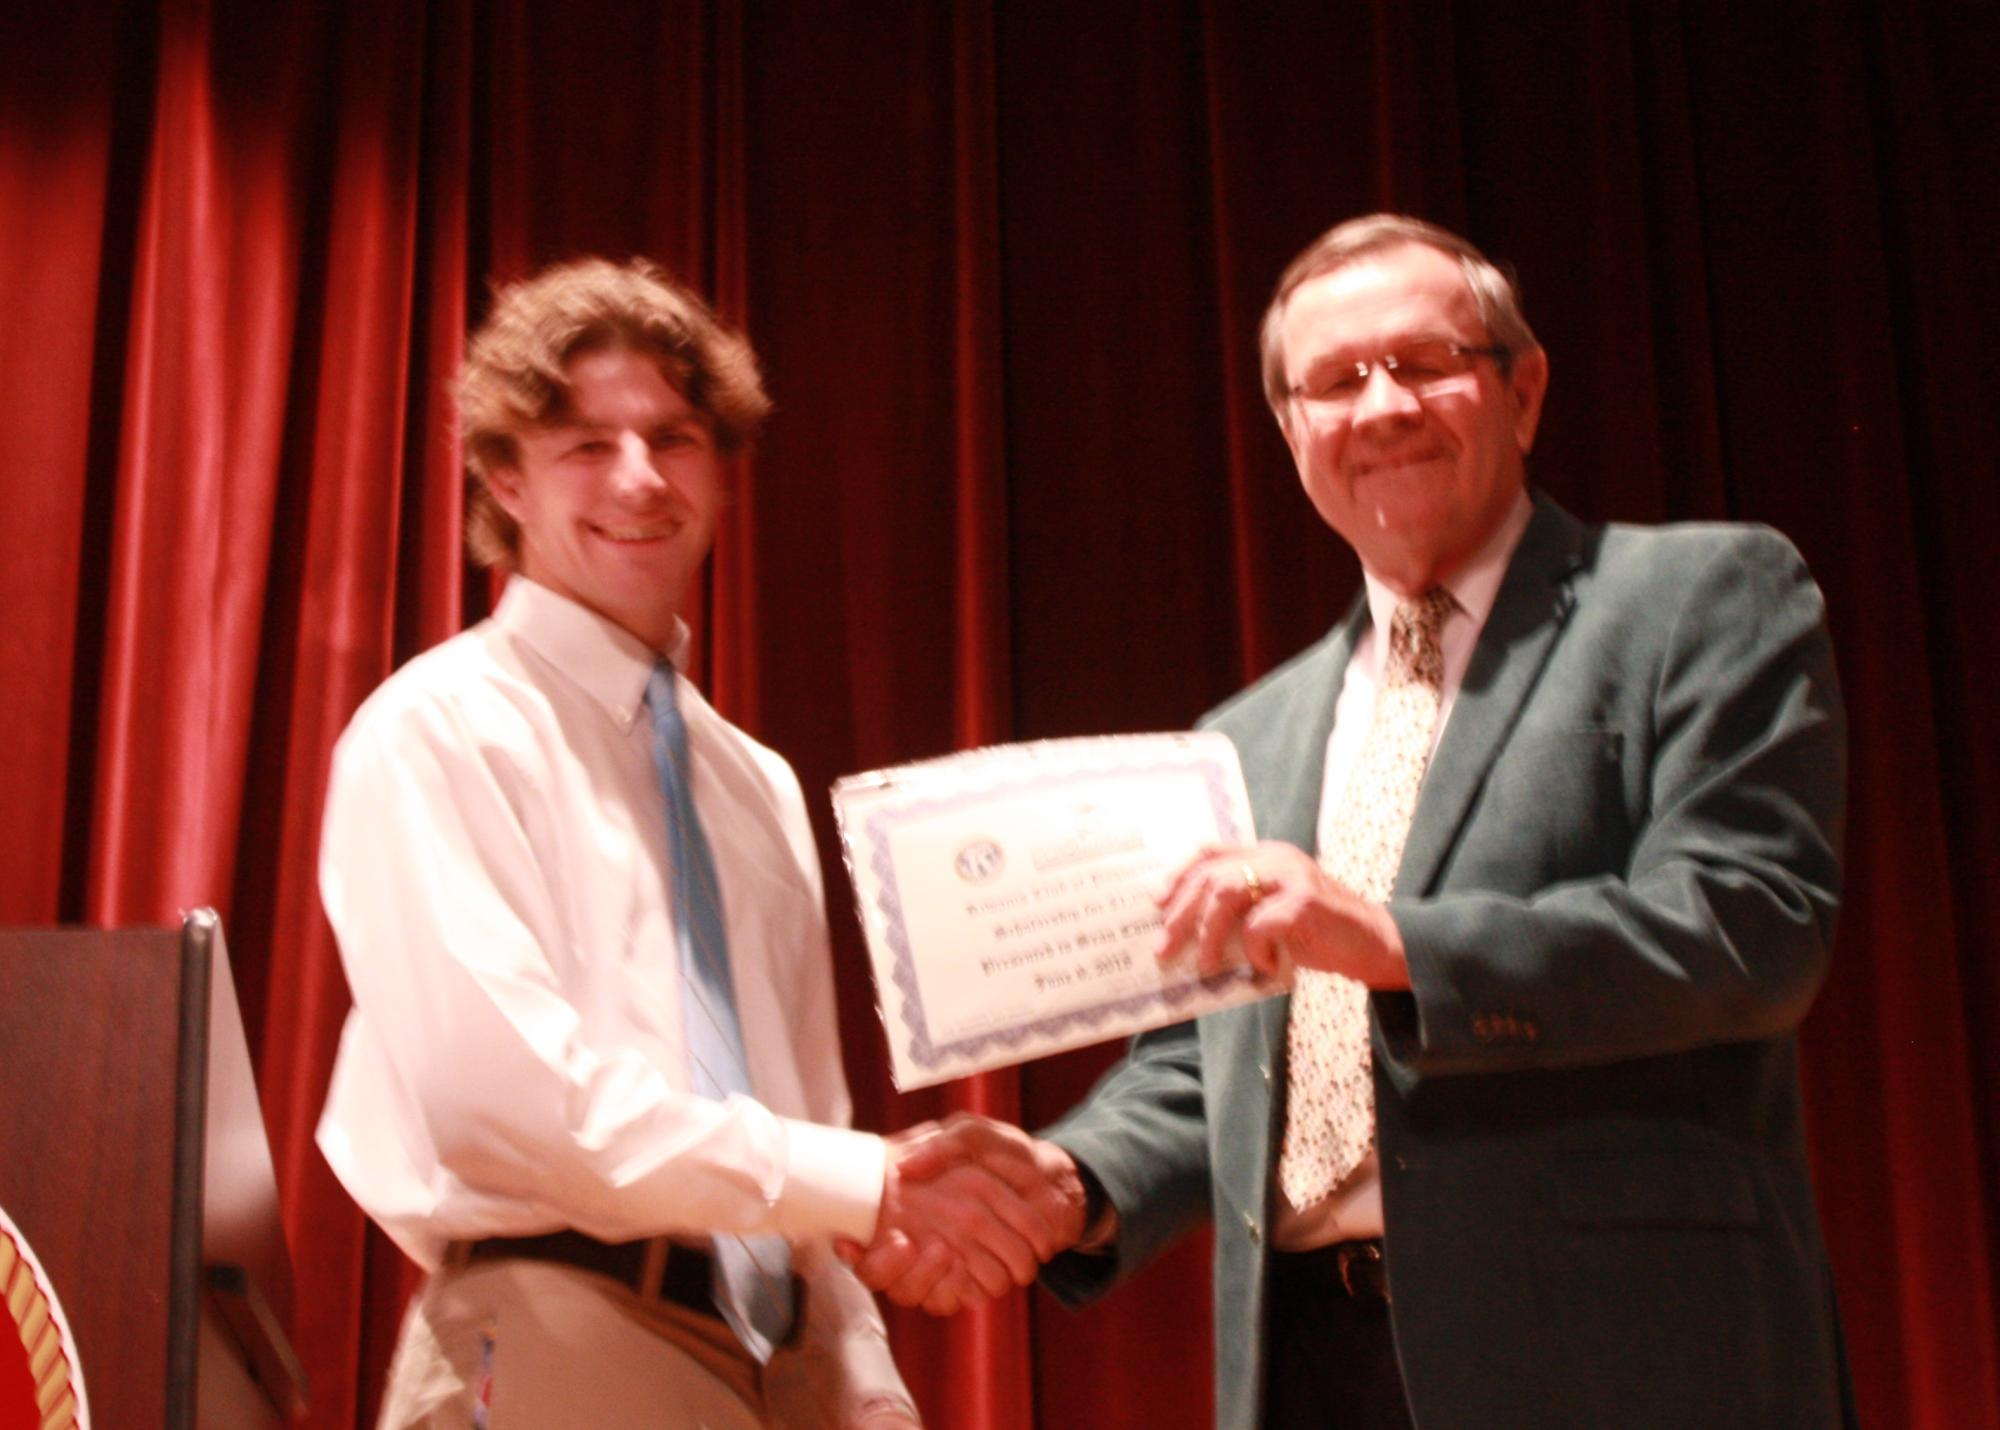 Sean Conners--Kiwanis Club of Poquoson Scholarship